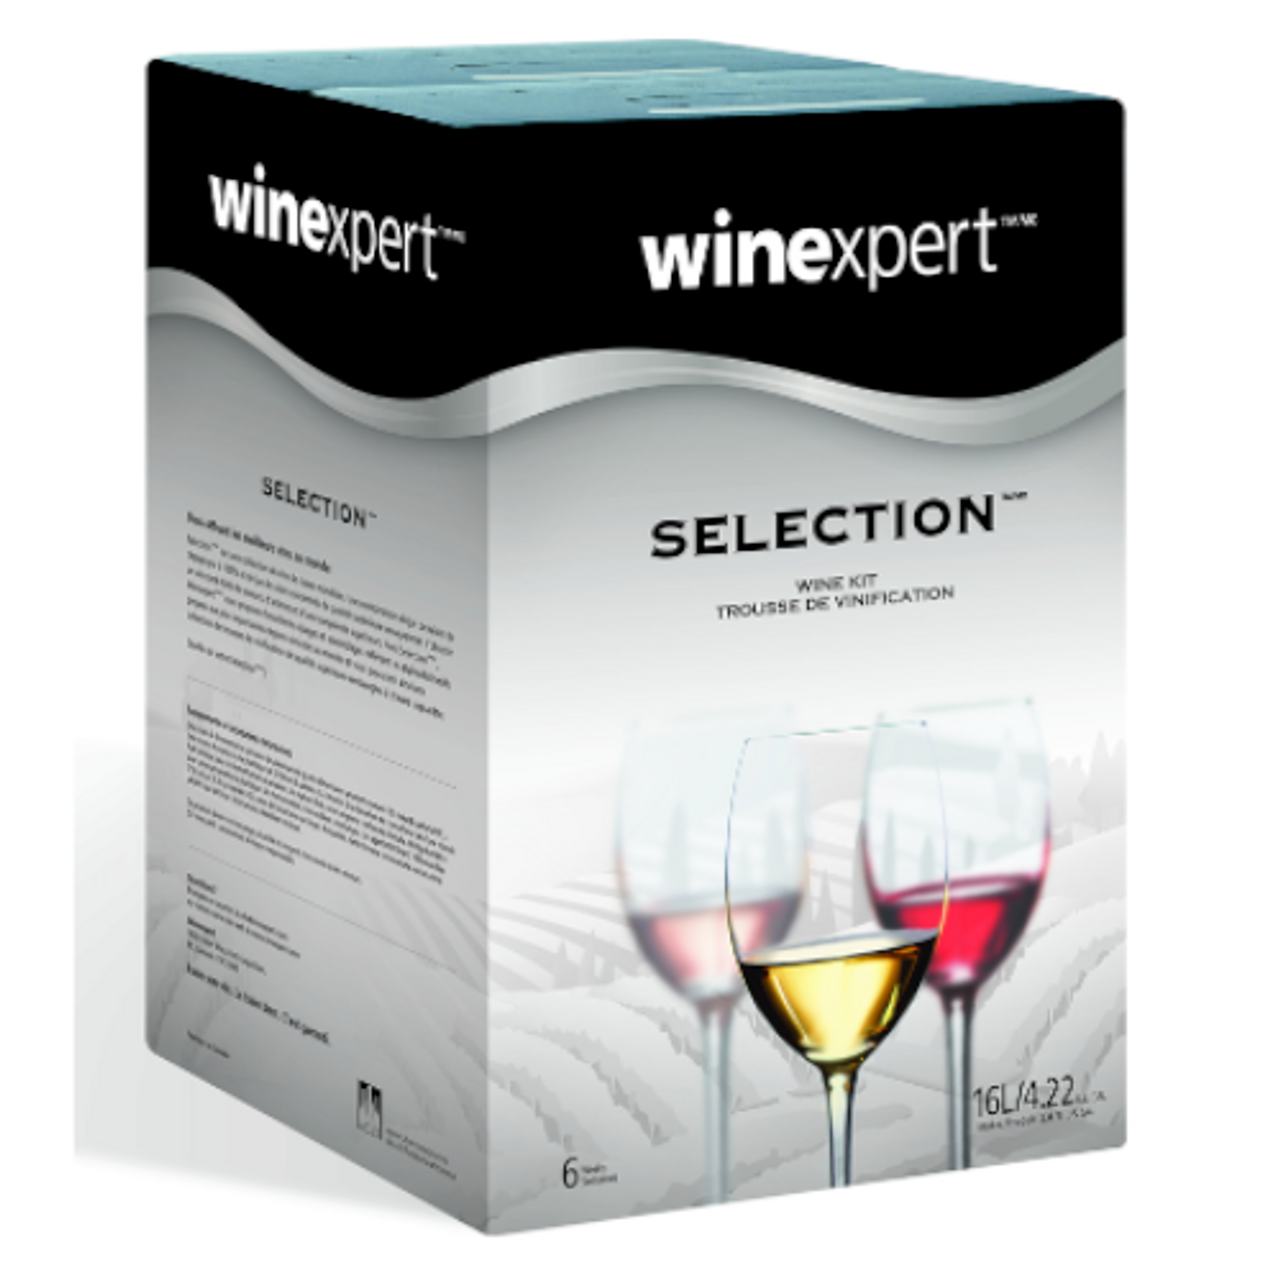 Winexpert Kits